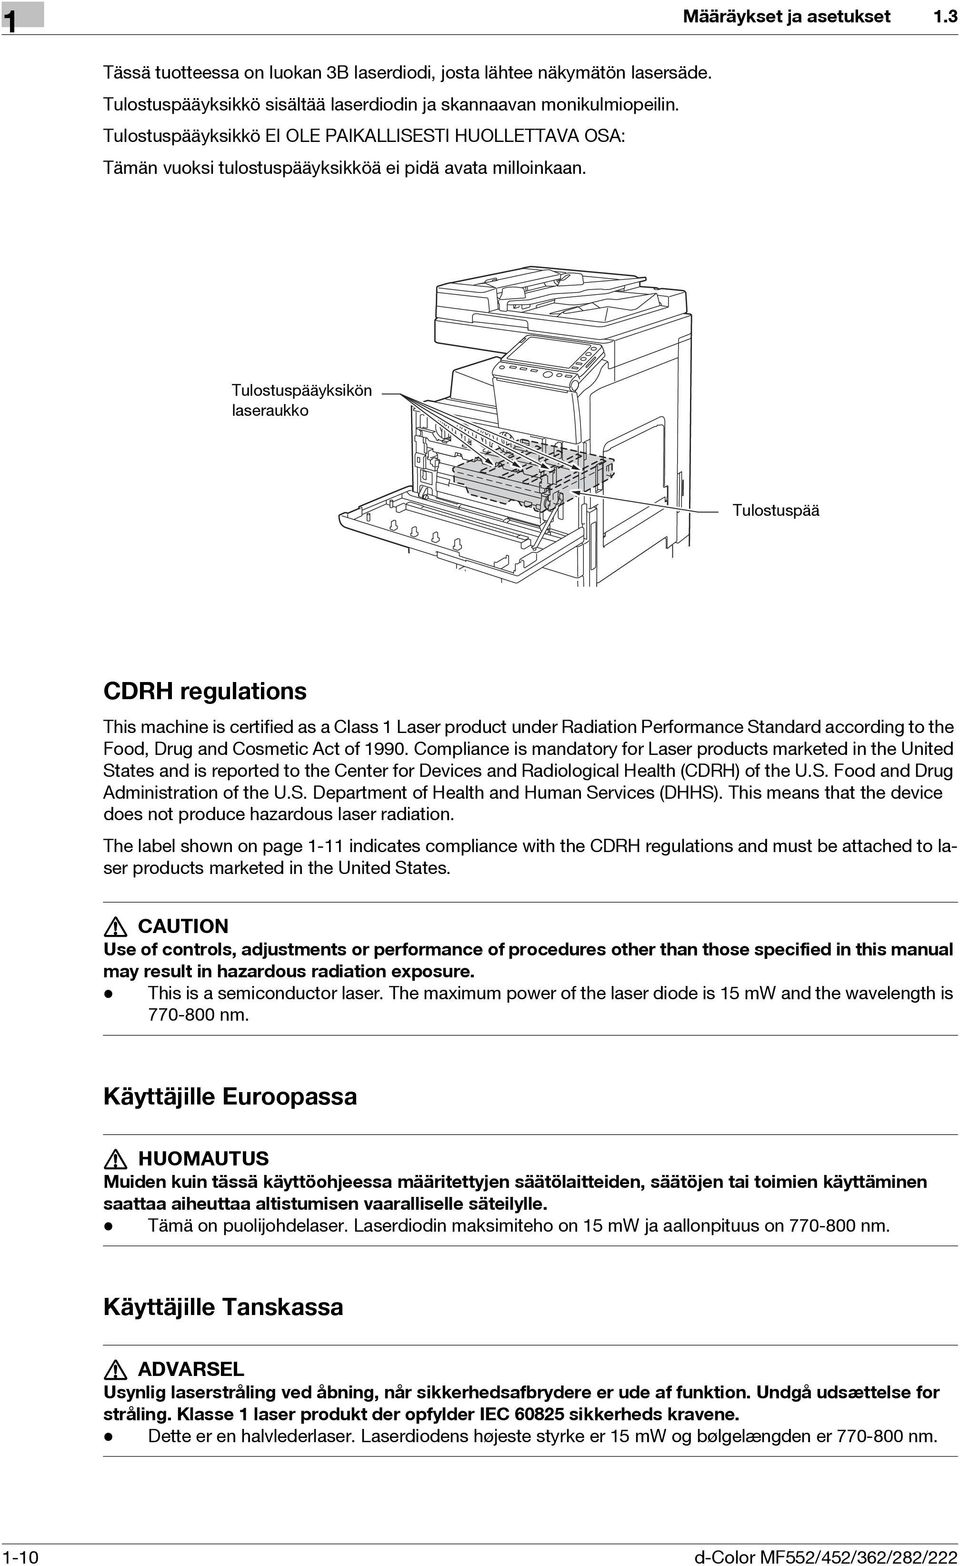 3 Tulostuspääyksikön laseraukko Tulostuspää CDRH regulations This machine is certified as a Class 1 Laser product under Radiation Performance Standard according to the Food, Drug and Cosmetic Act of